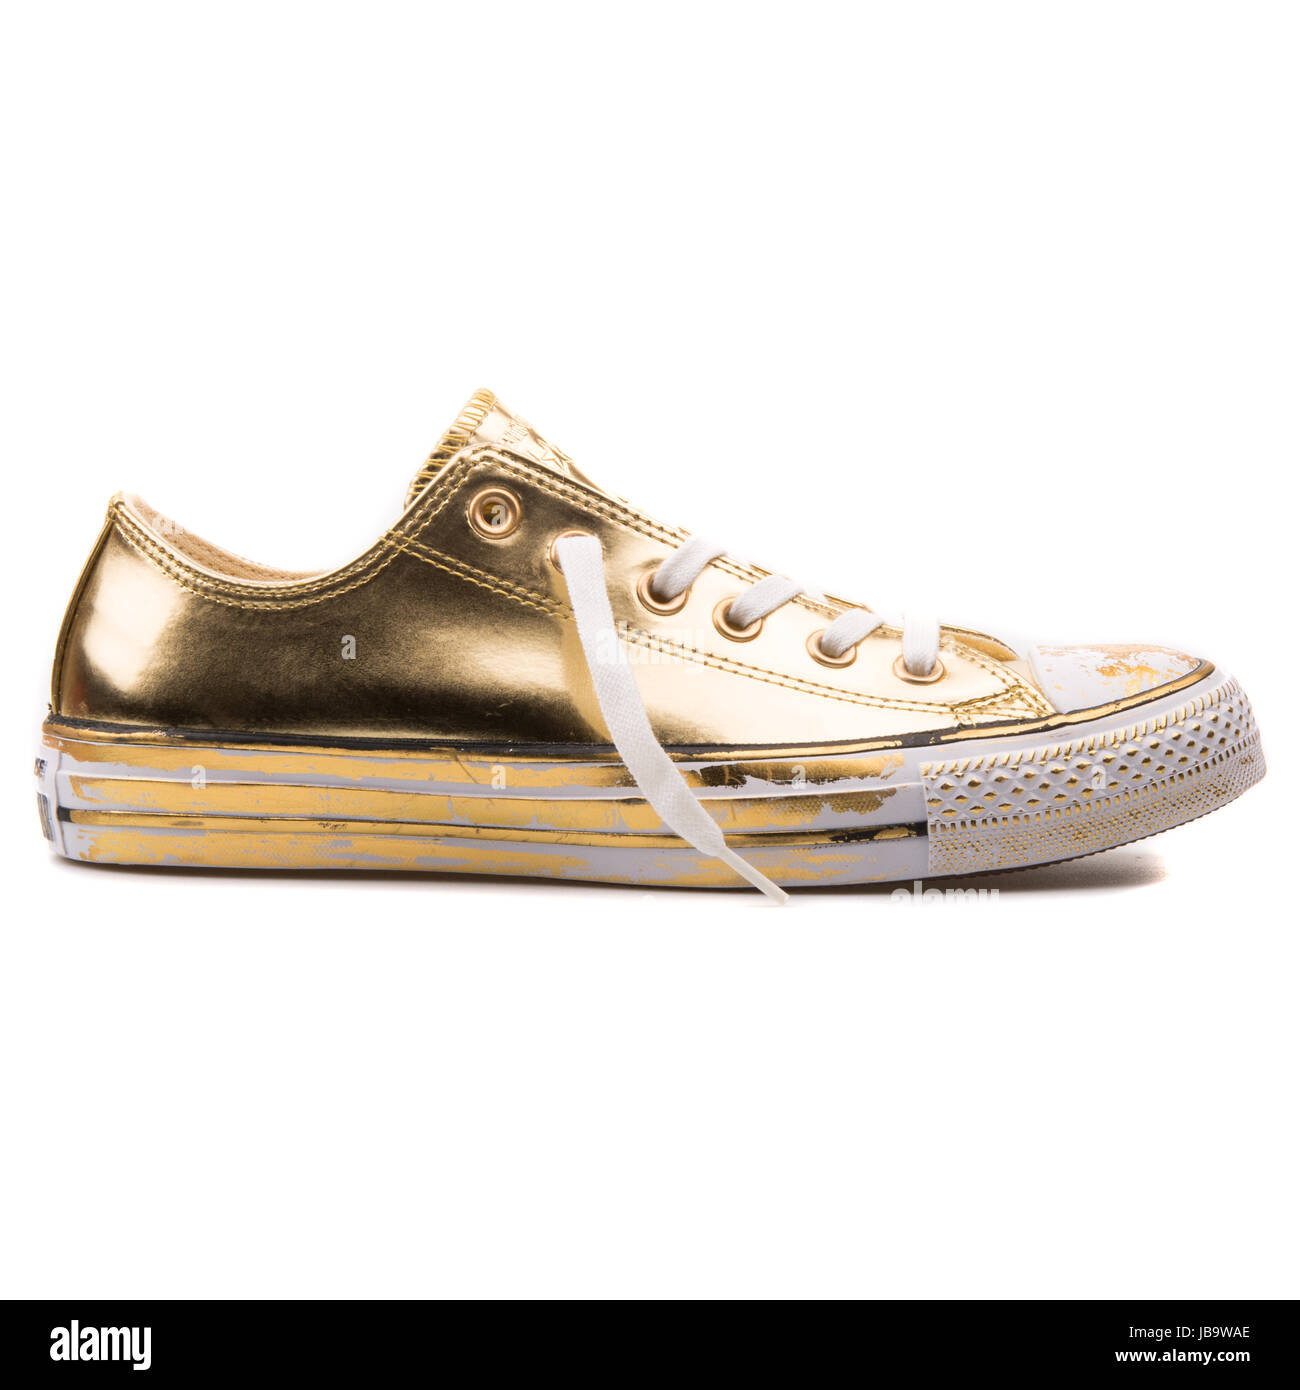 861f6ed1fe00 Converse Chuck Taylor All Star Chrome Gold Leather and White OX Women s  Shoes - 549653C